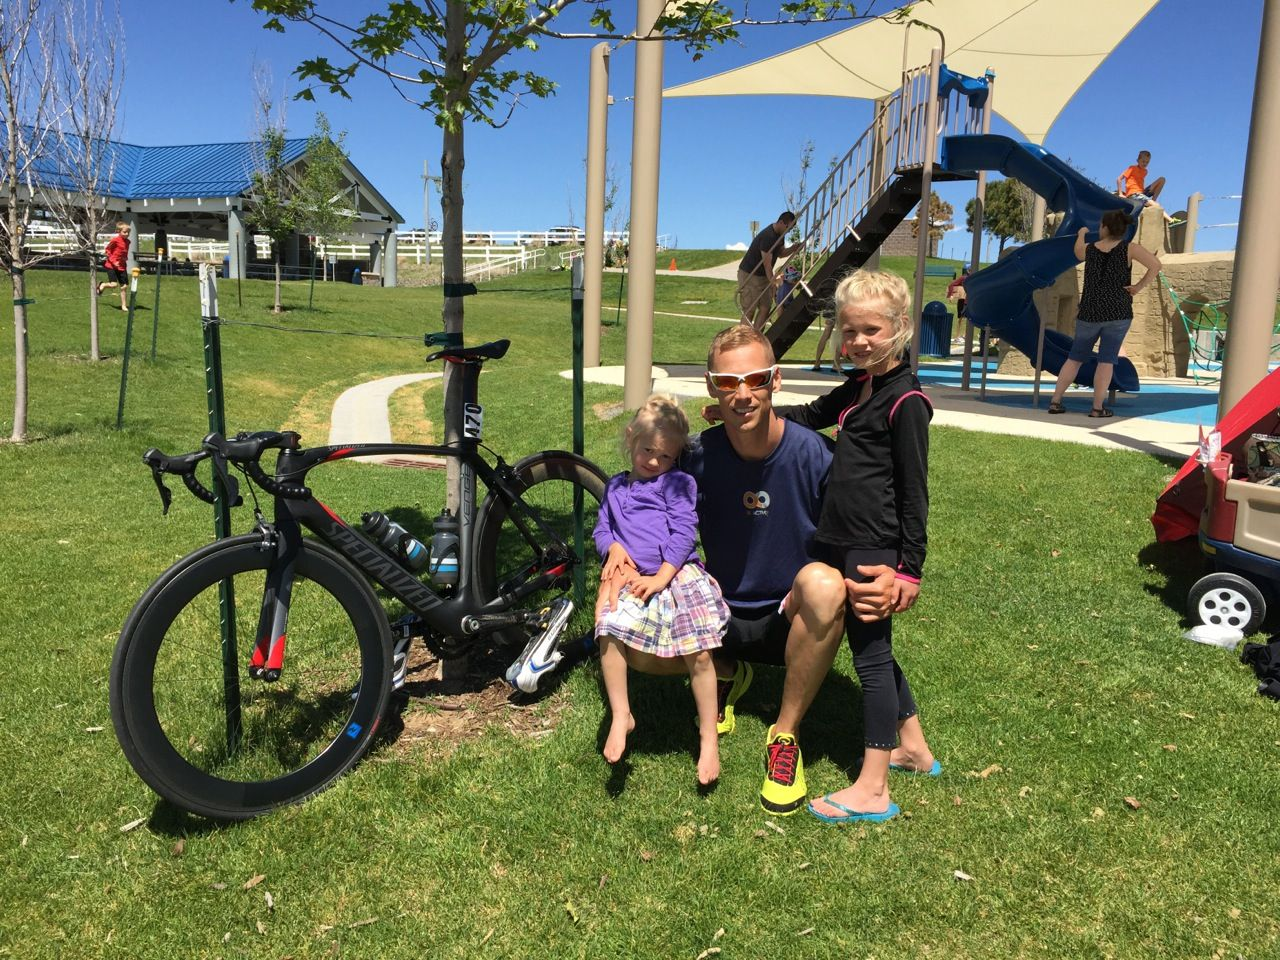 What a great weekend to get out and #BeActive! Micah Worrell and his daughters hit the bike trail and the playground!